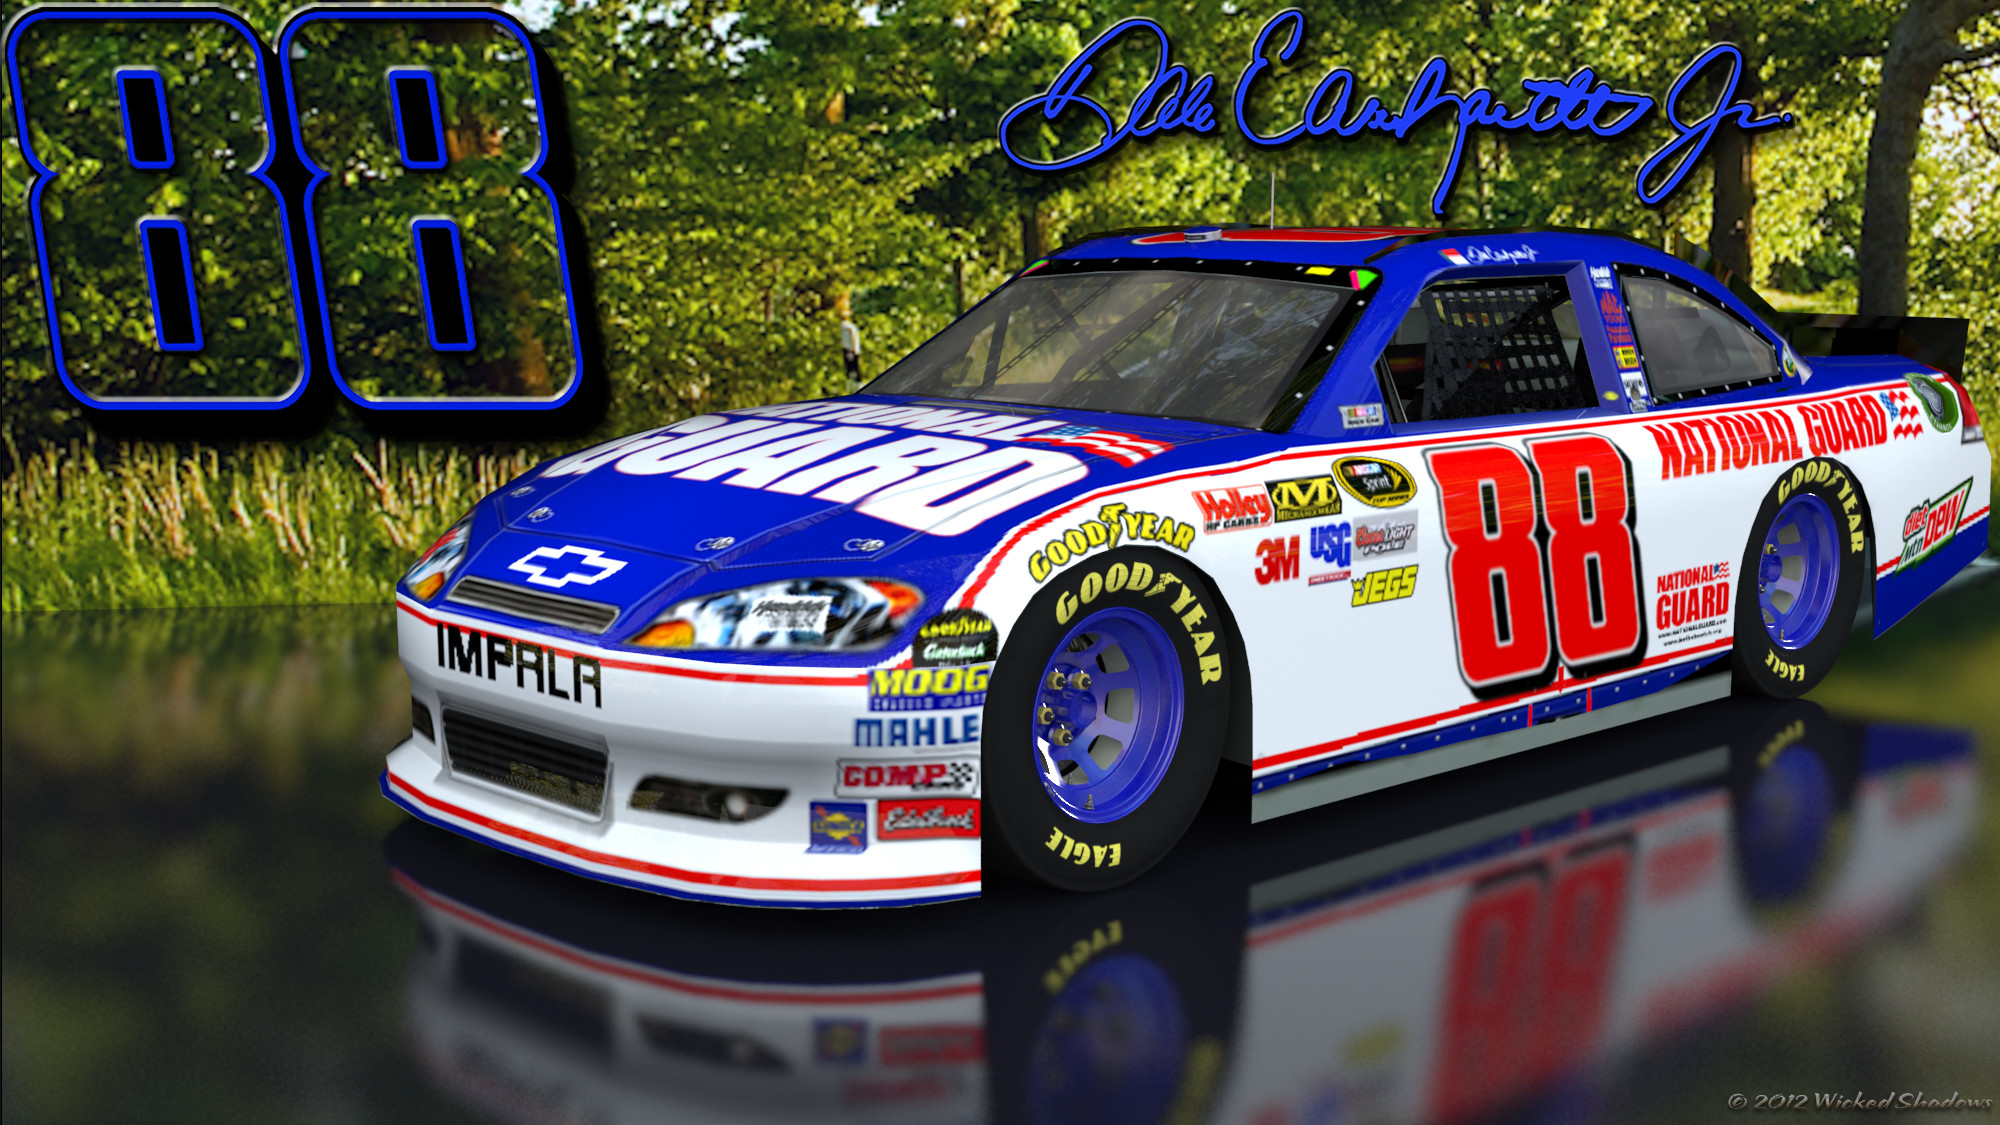 2000x1125 ... Alt Version | 16x10 | 16x10 Alt Dale Earnhardt Jr National Guard 1  Outdoors Wallpaper ...